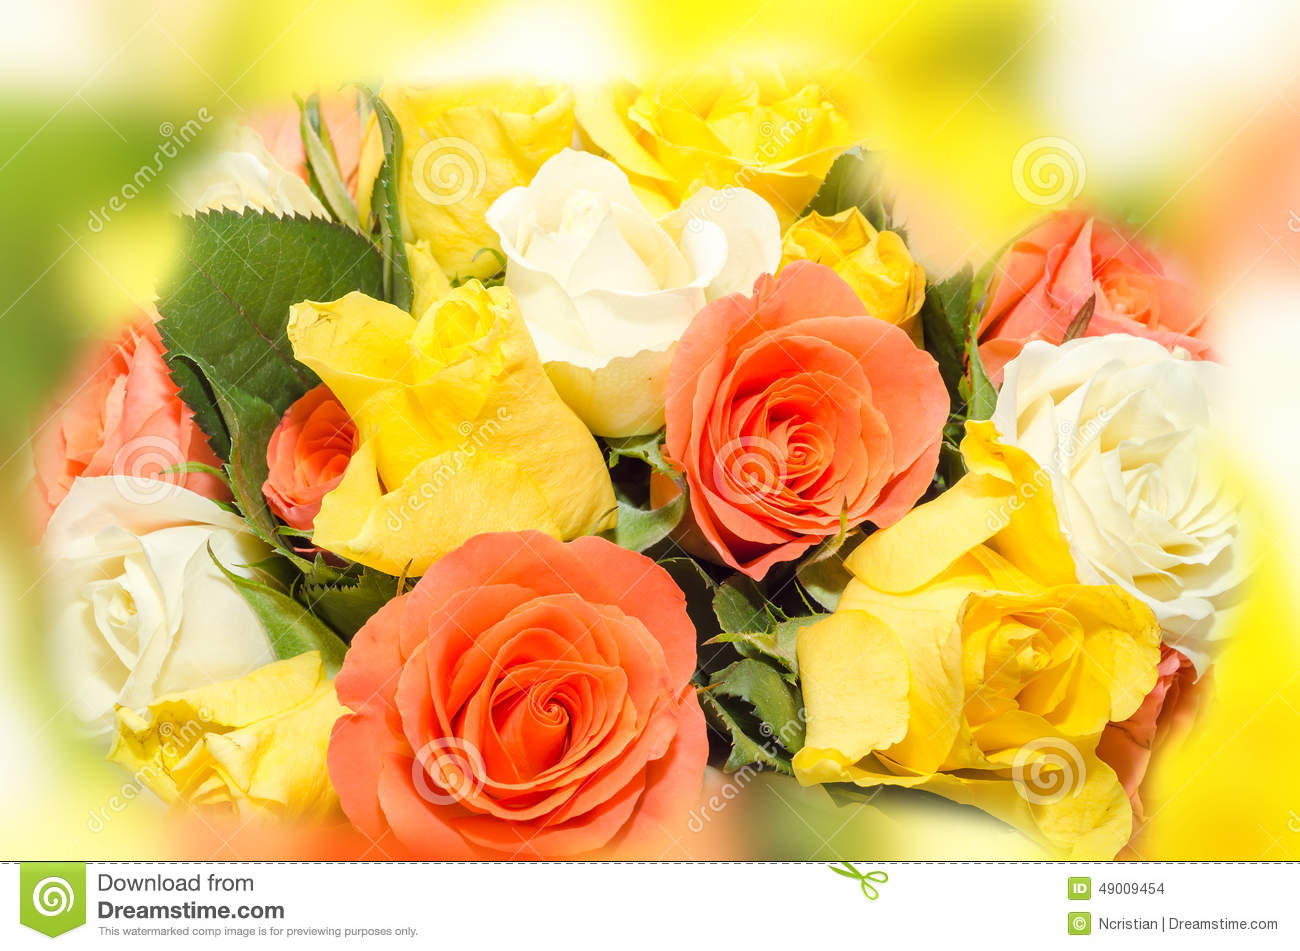 Valentines day flowers with white orange red and yellow roses valentines day flowers with white orange red and yellow roses flowers isolated beauty mightylinksfo